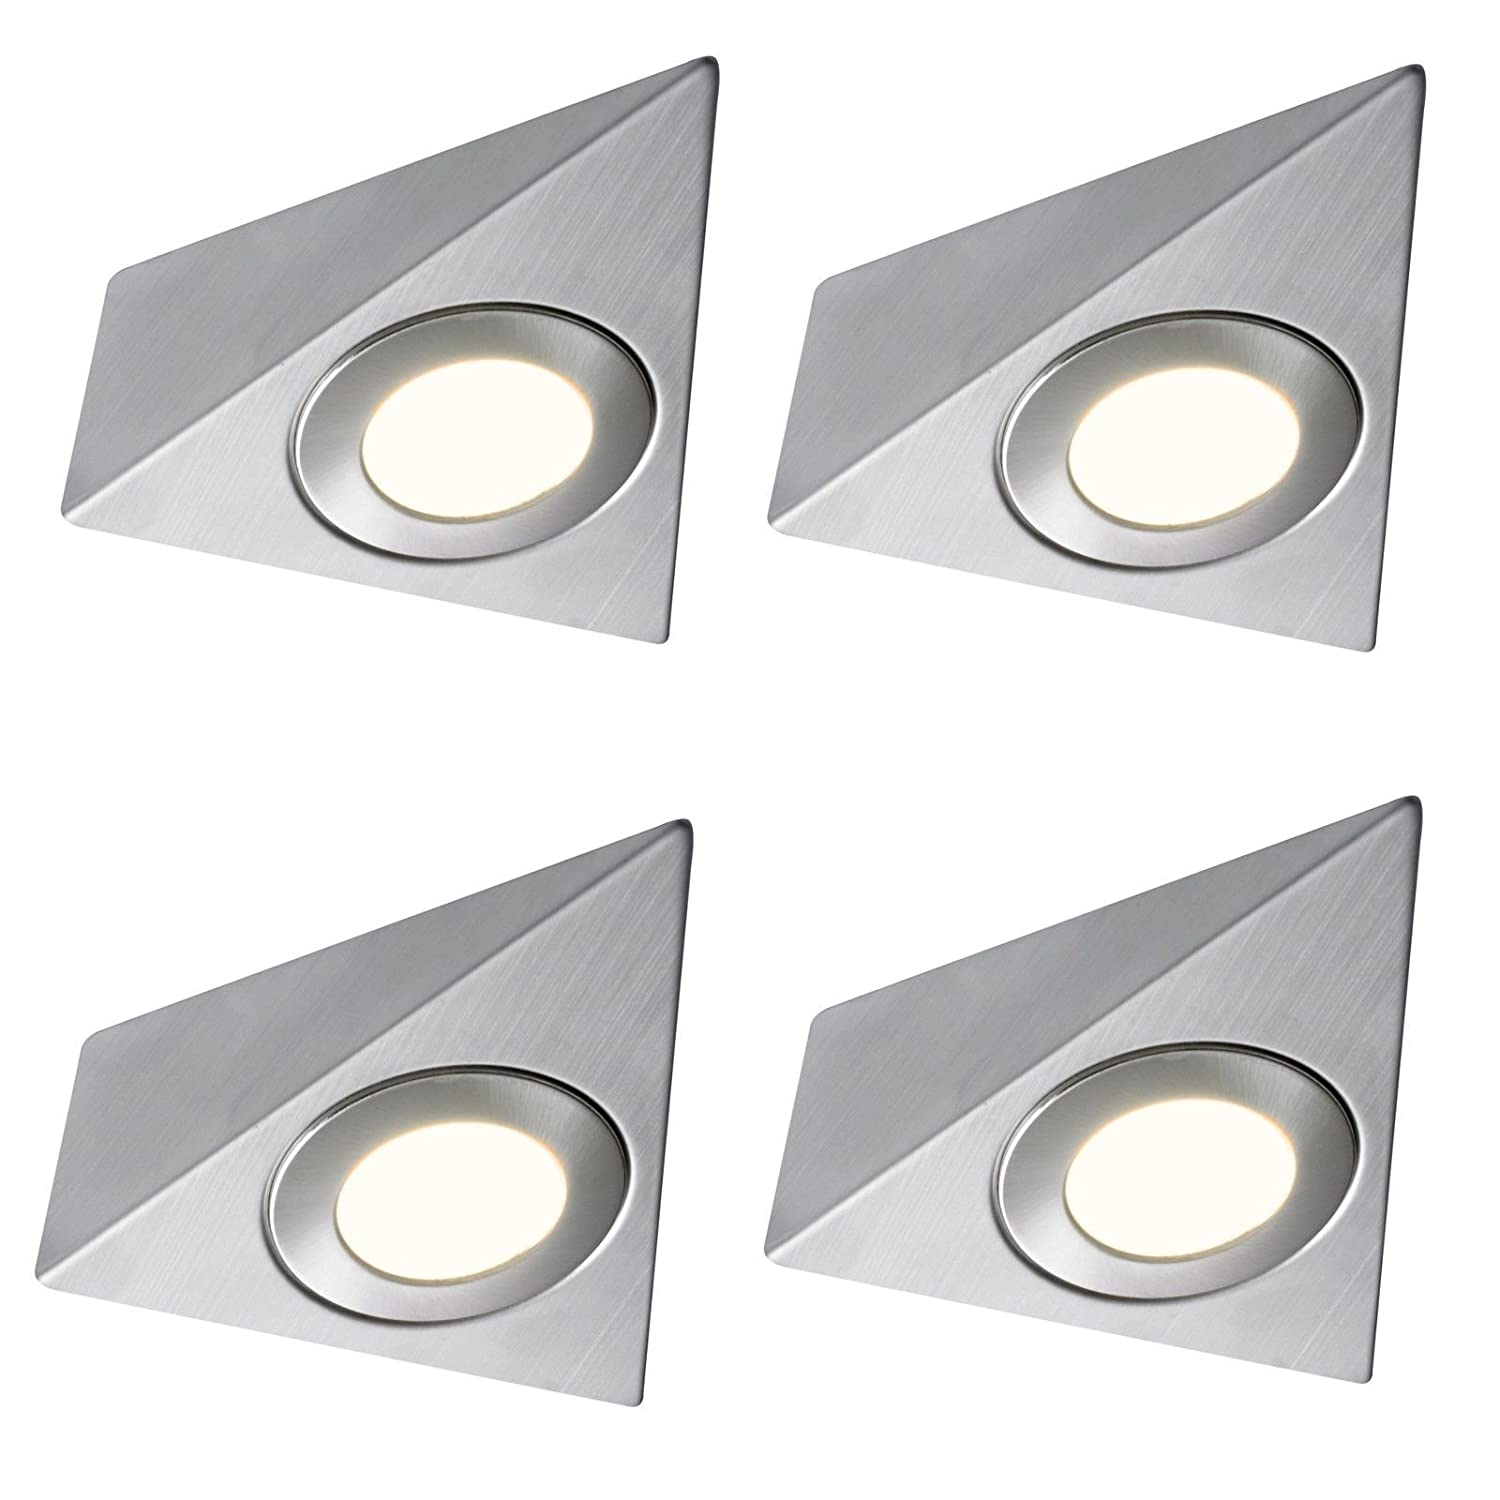 4 X LED TRIANGLE LIGHT MAINS KITCHEN UNDER UNIT CABINET CUPBOARD WARM WHITE Lighting Innovations